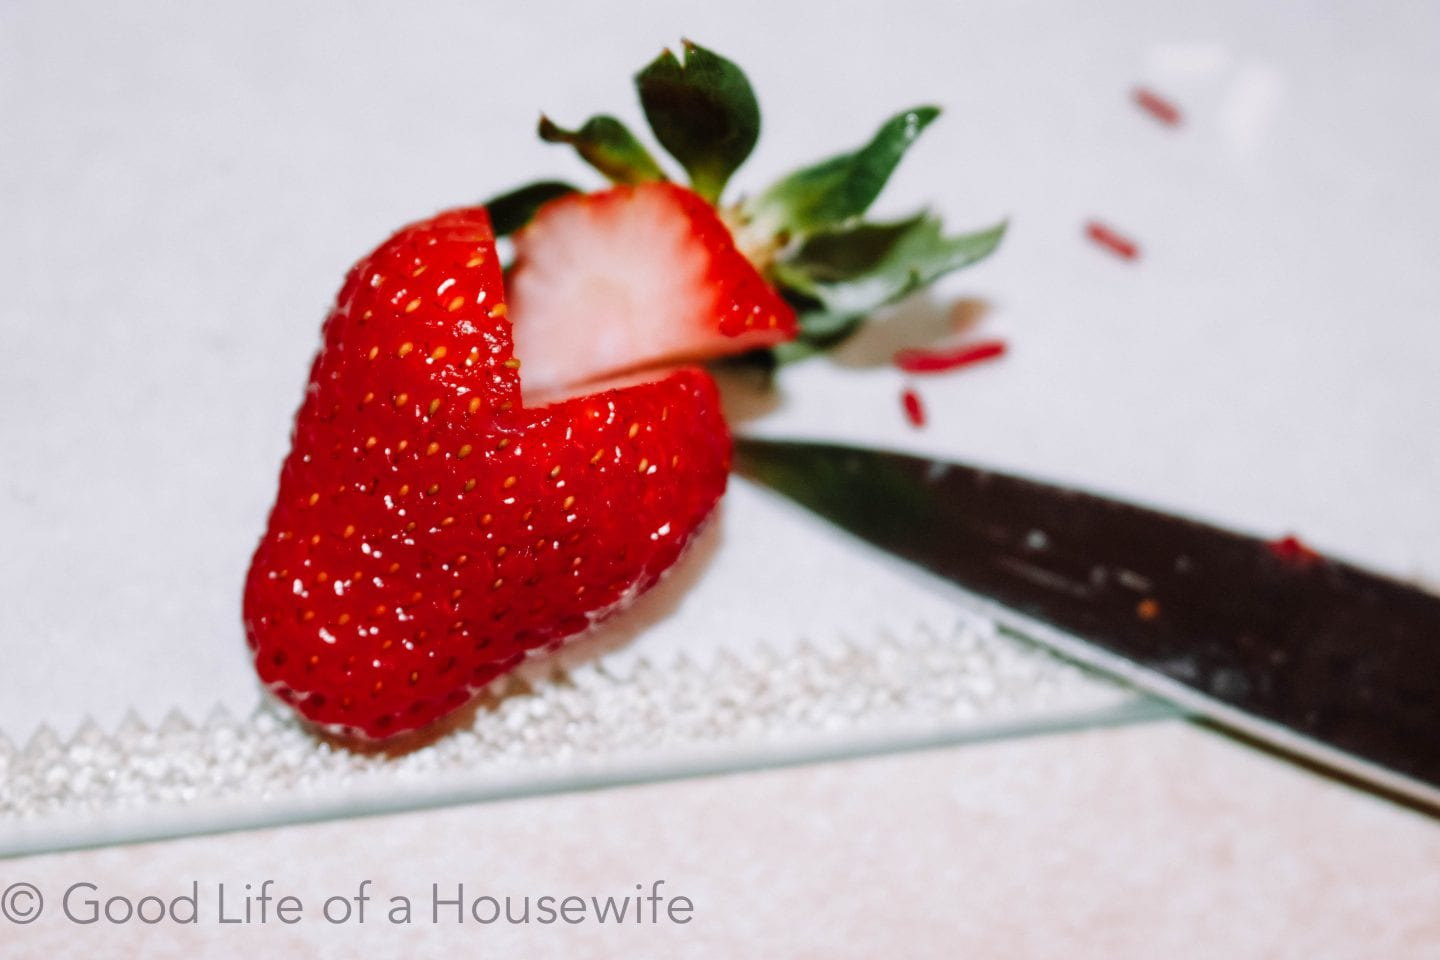 Heart Strawberries for Valentine's Day